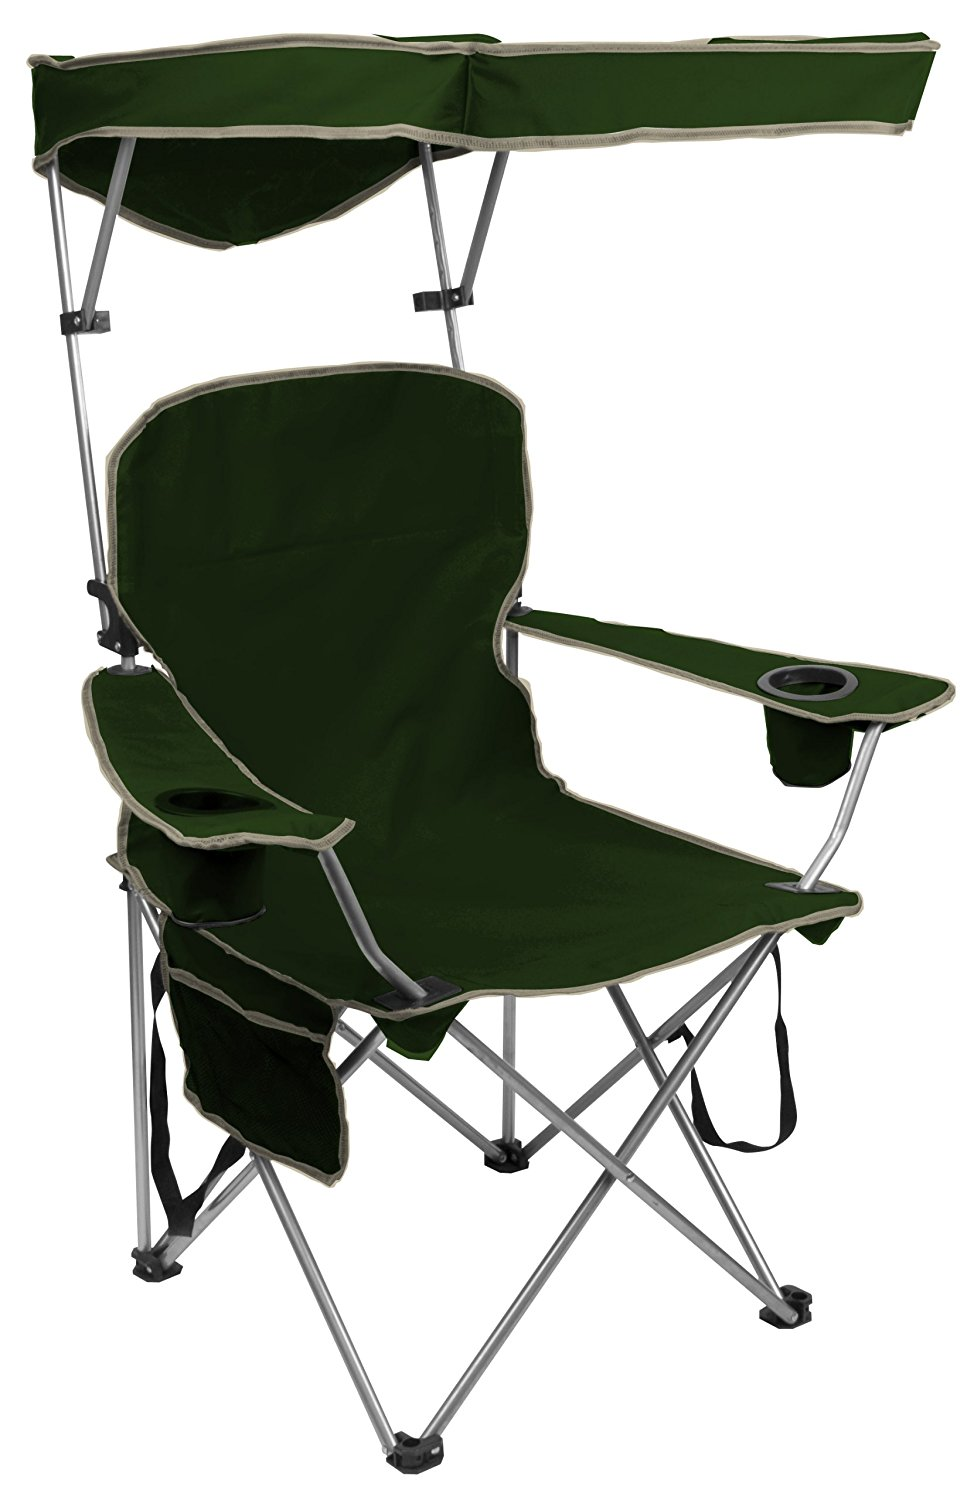 sports chair with canopy